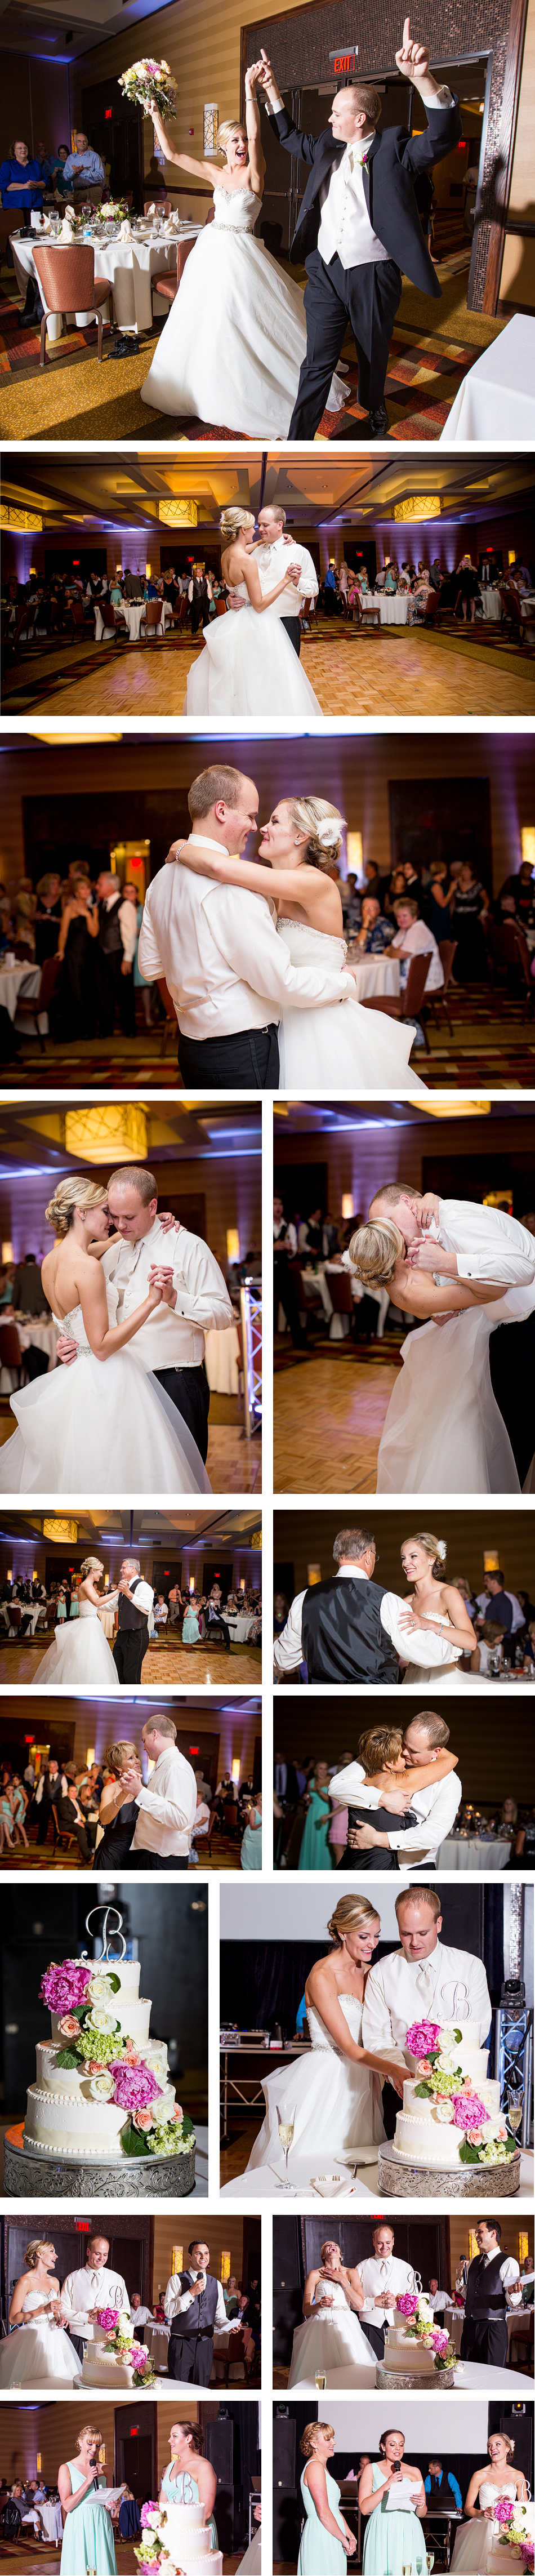 The Hyatt Louisville Wedding